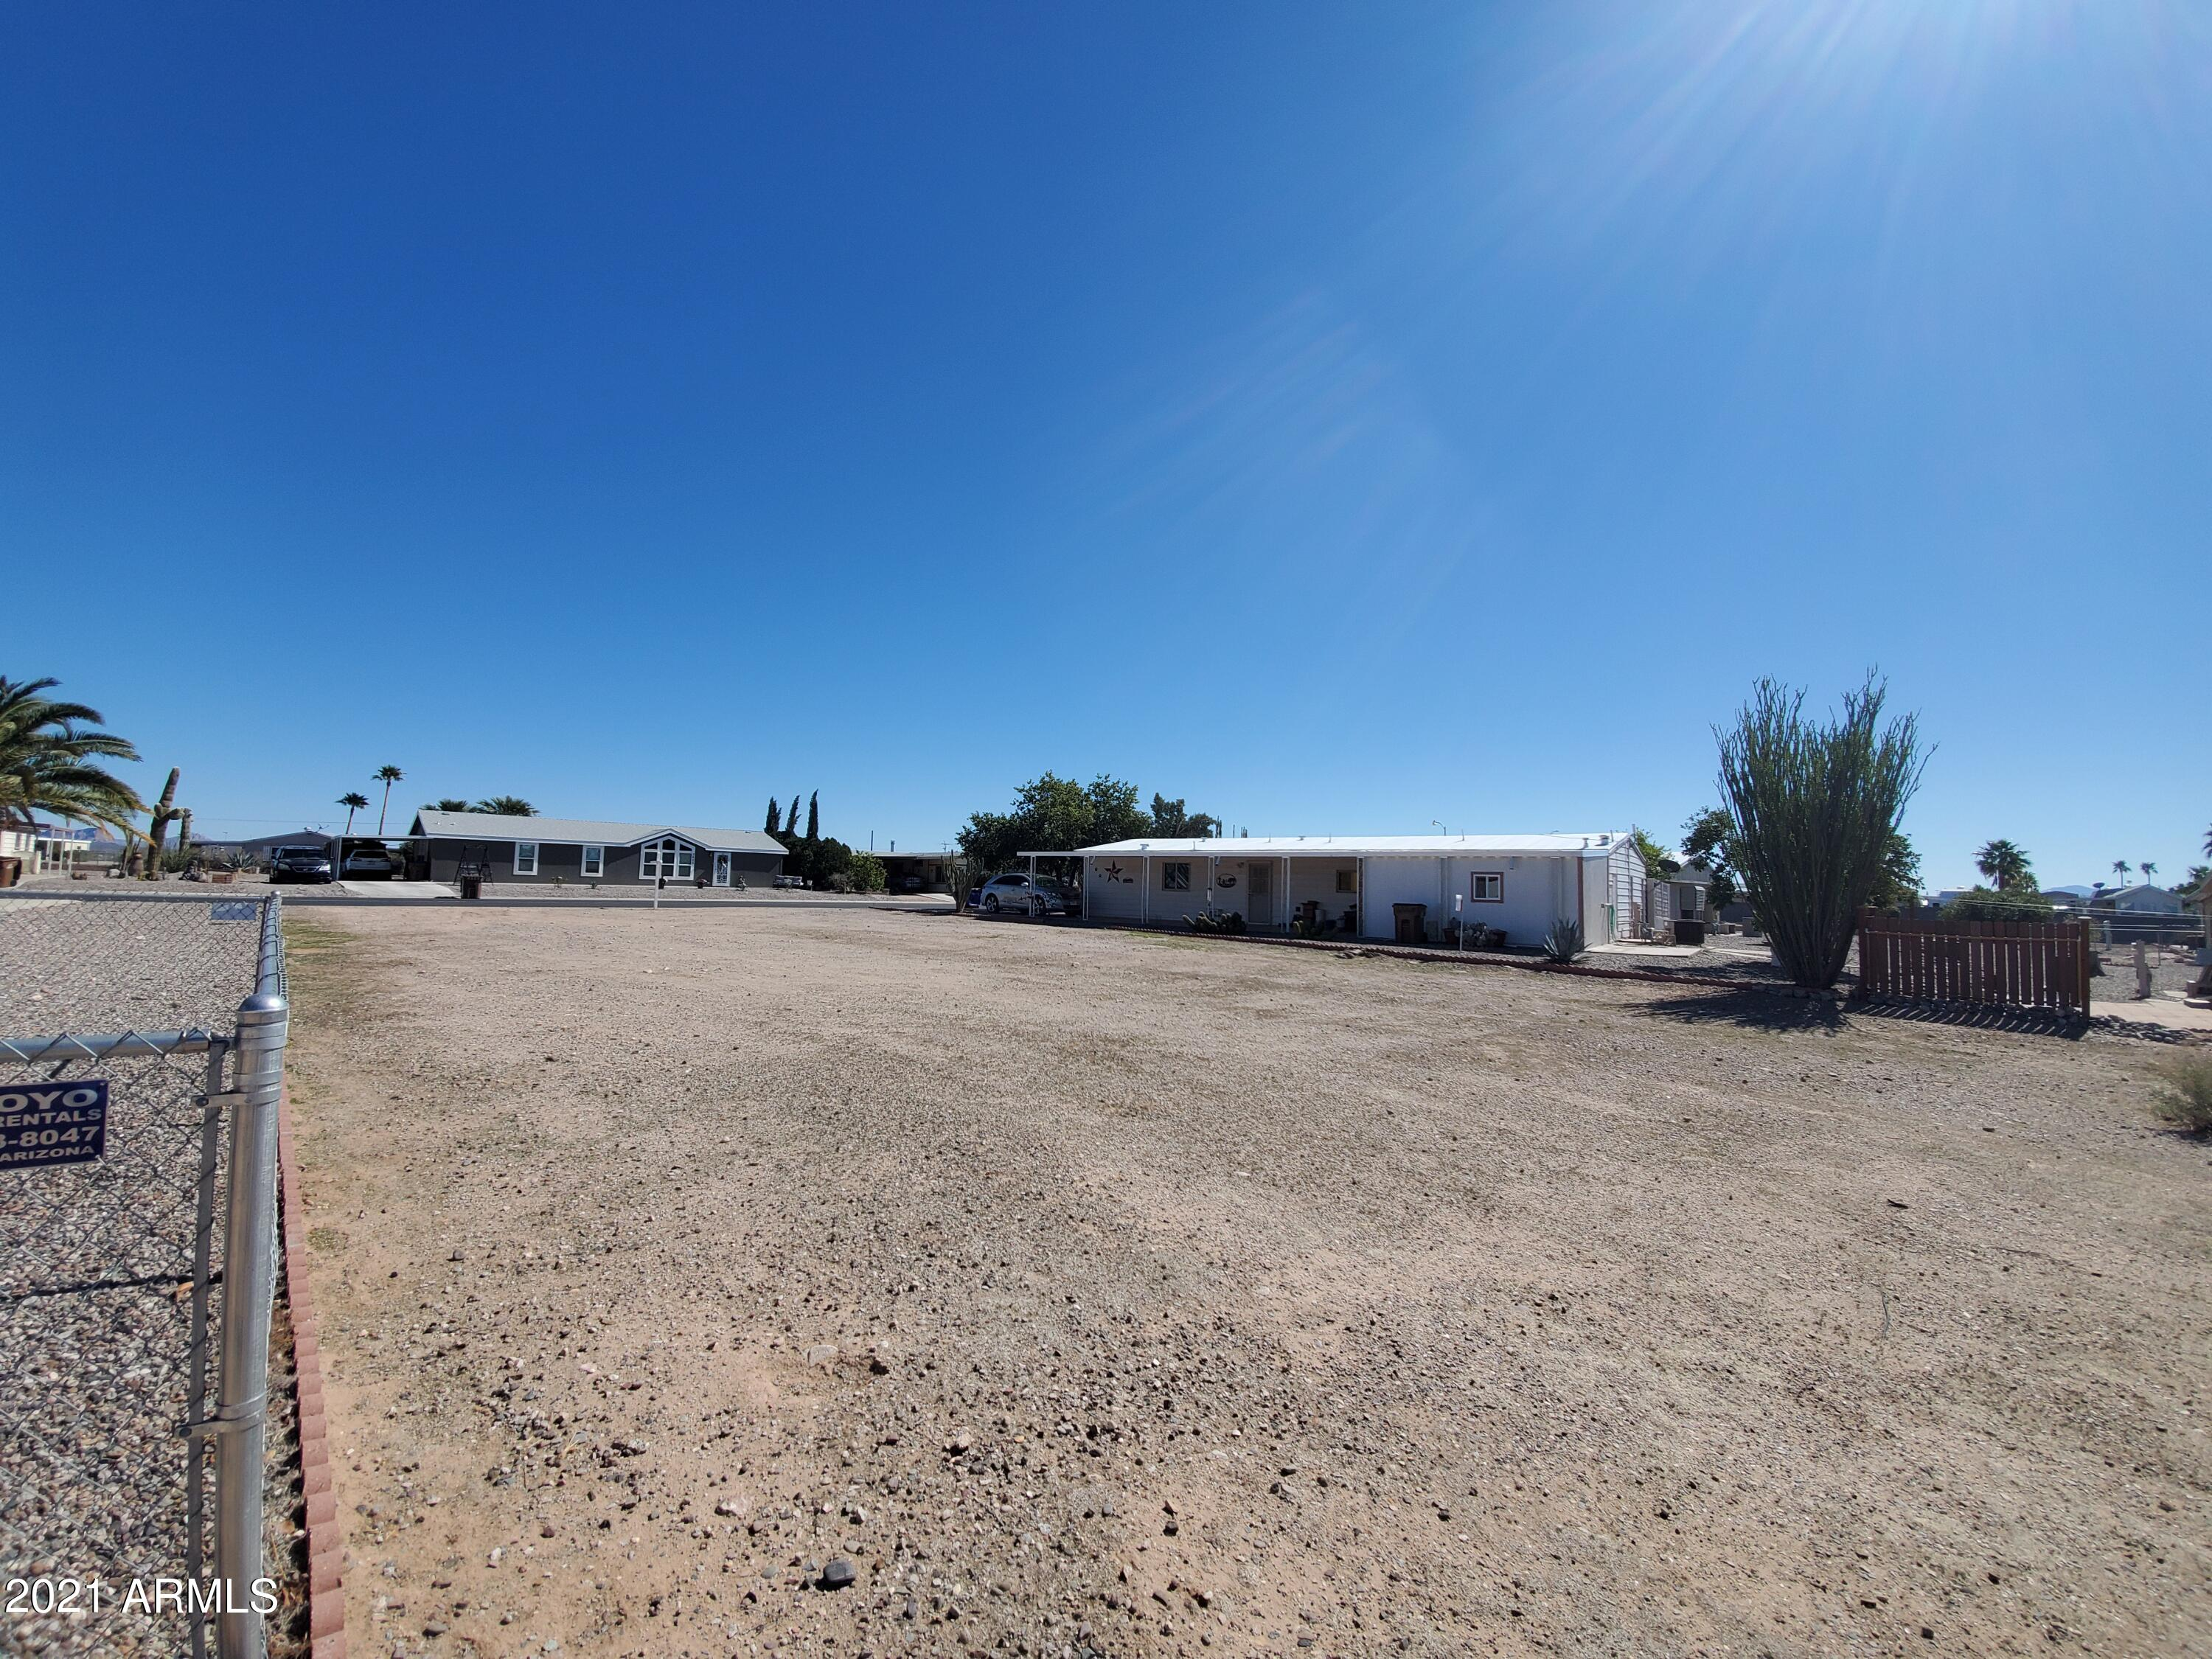 3606 N FLORENCE Boulevard, Florence, Arizona 85132, ,Lots And Land,For Sale,3606 N FLORENCE Boulevard,6198402